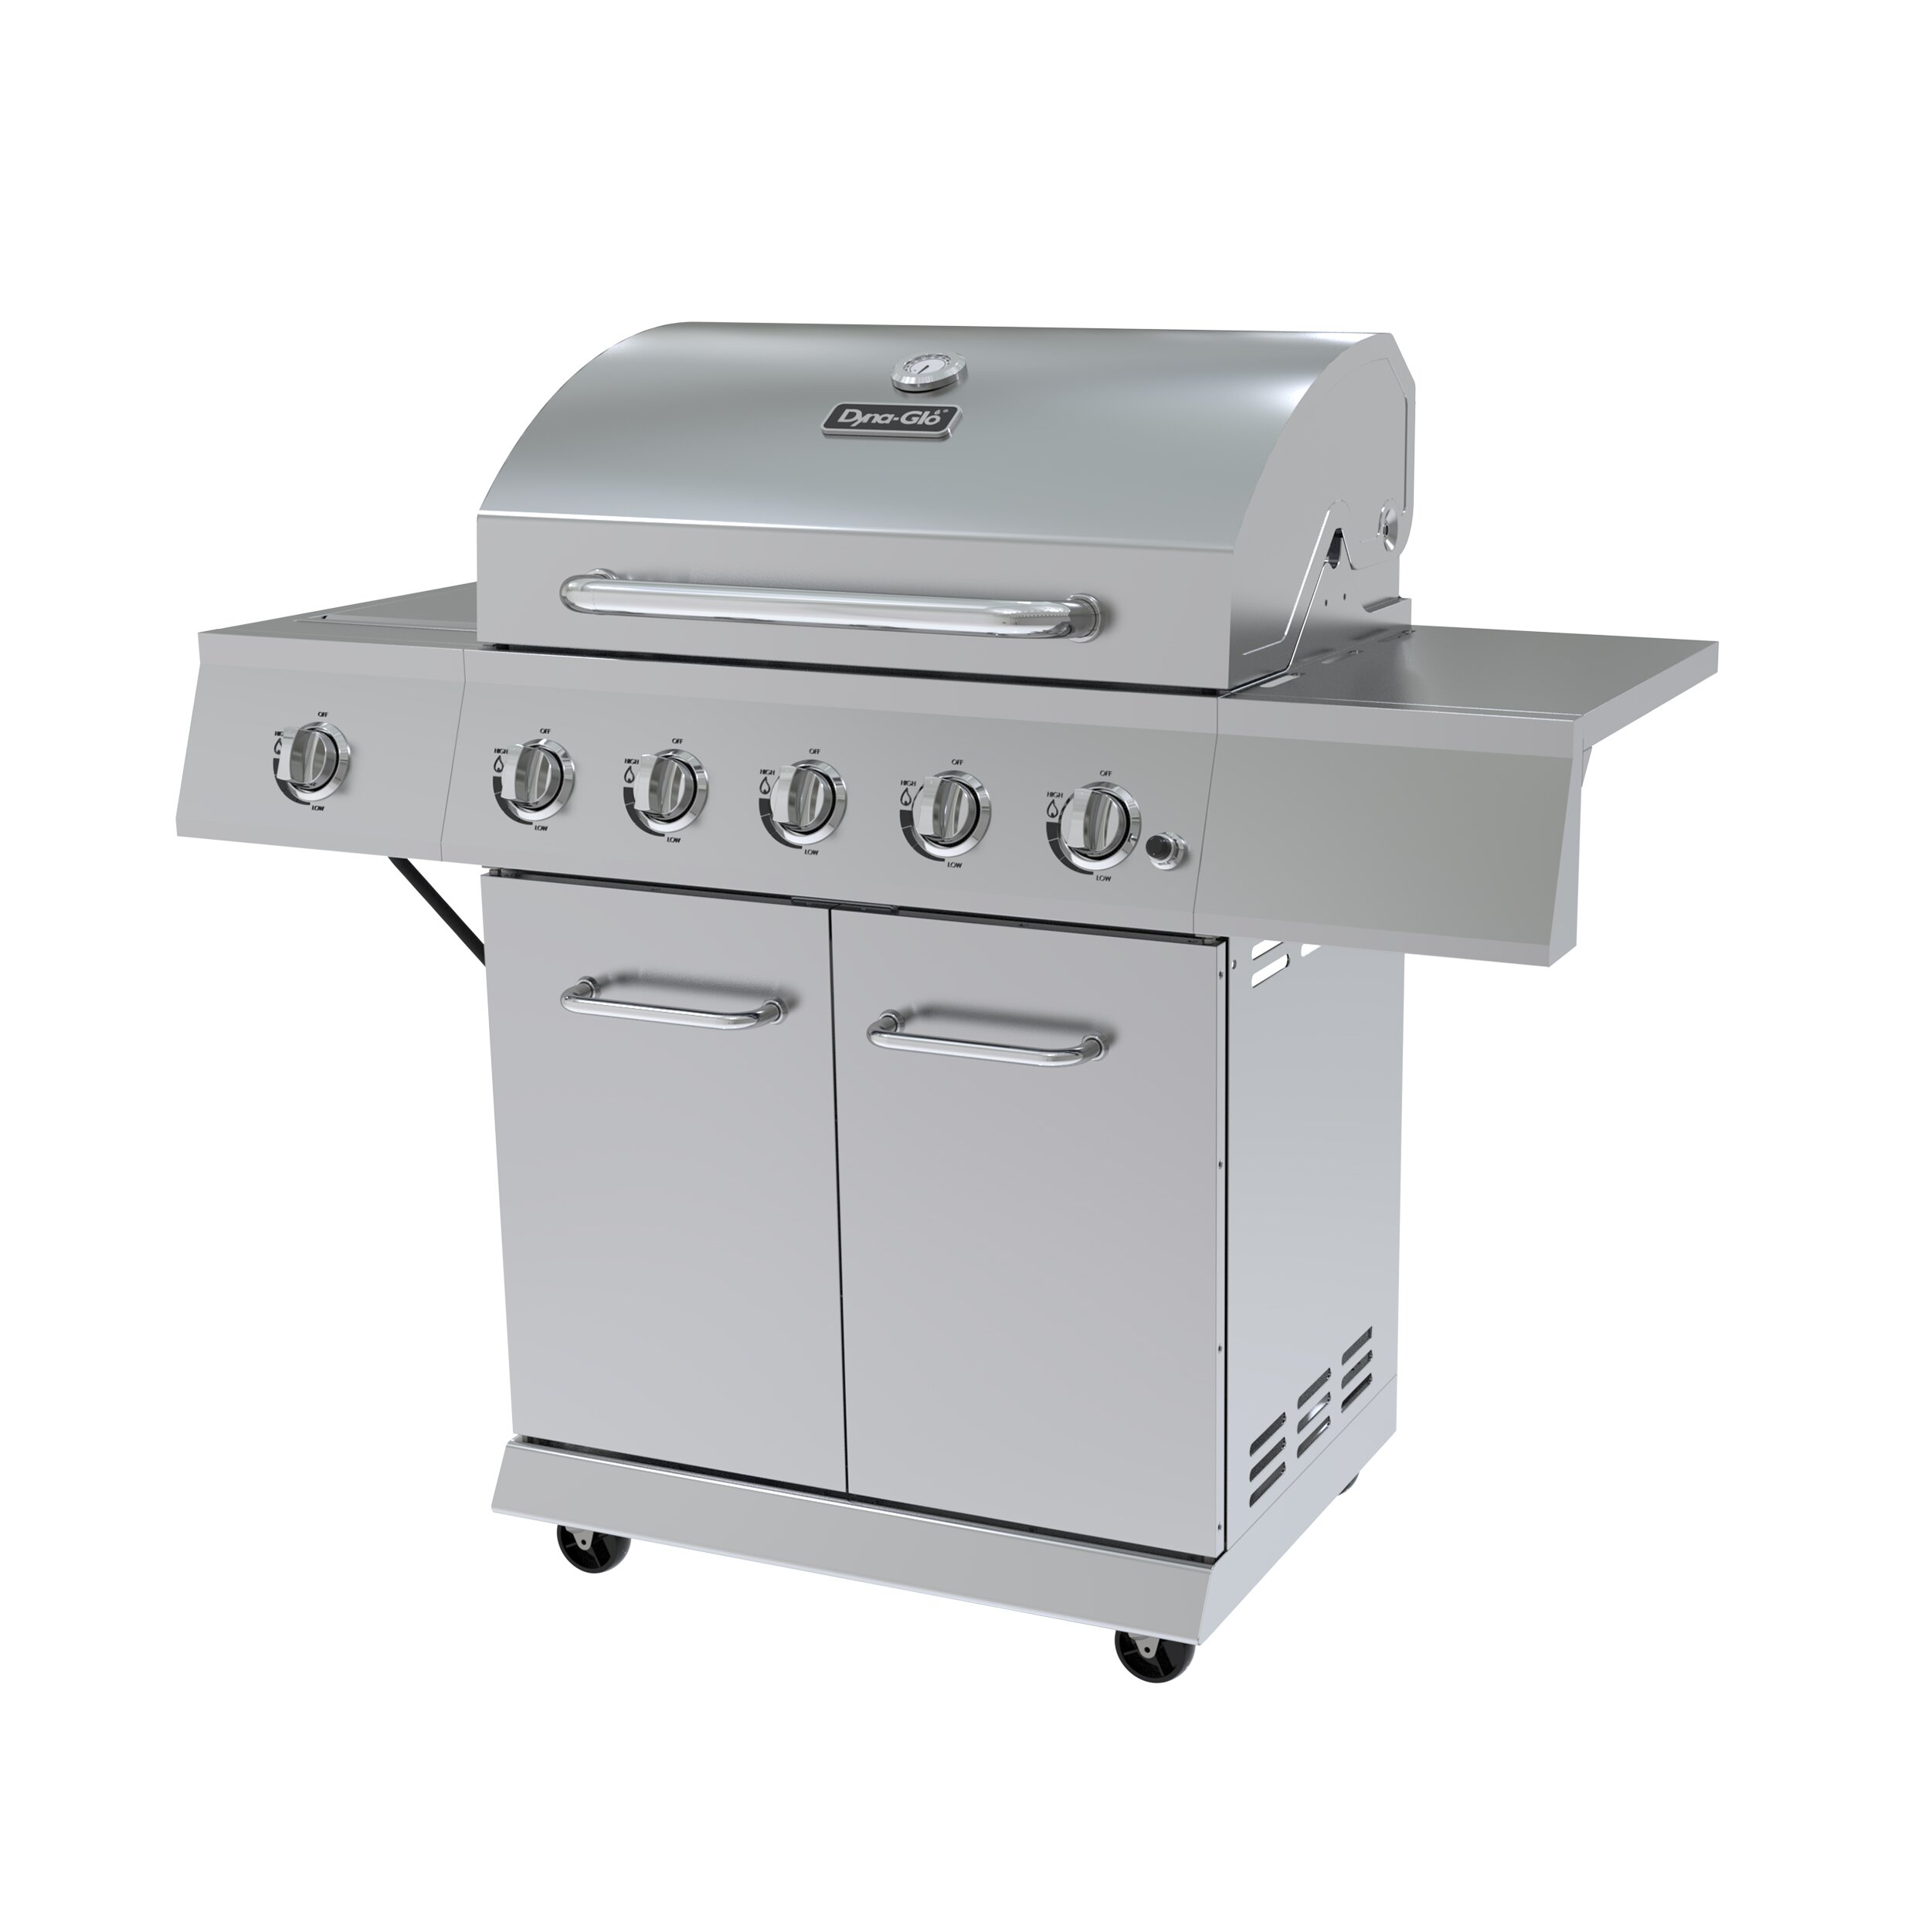 Dyna Glo Grill Cover 5 Burner: Dyna-Glo 5 Burner Gas Grill & Reviews